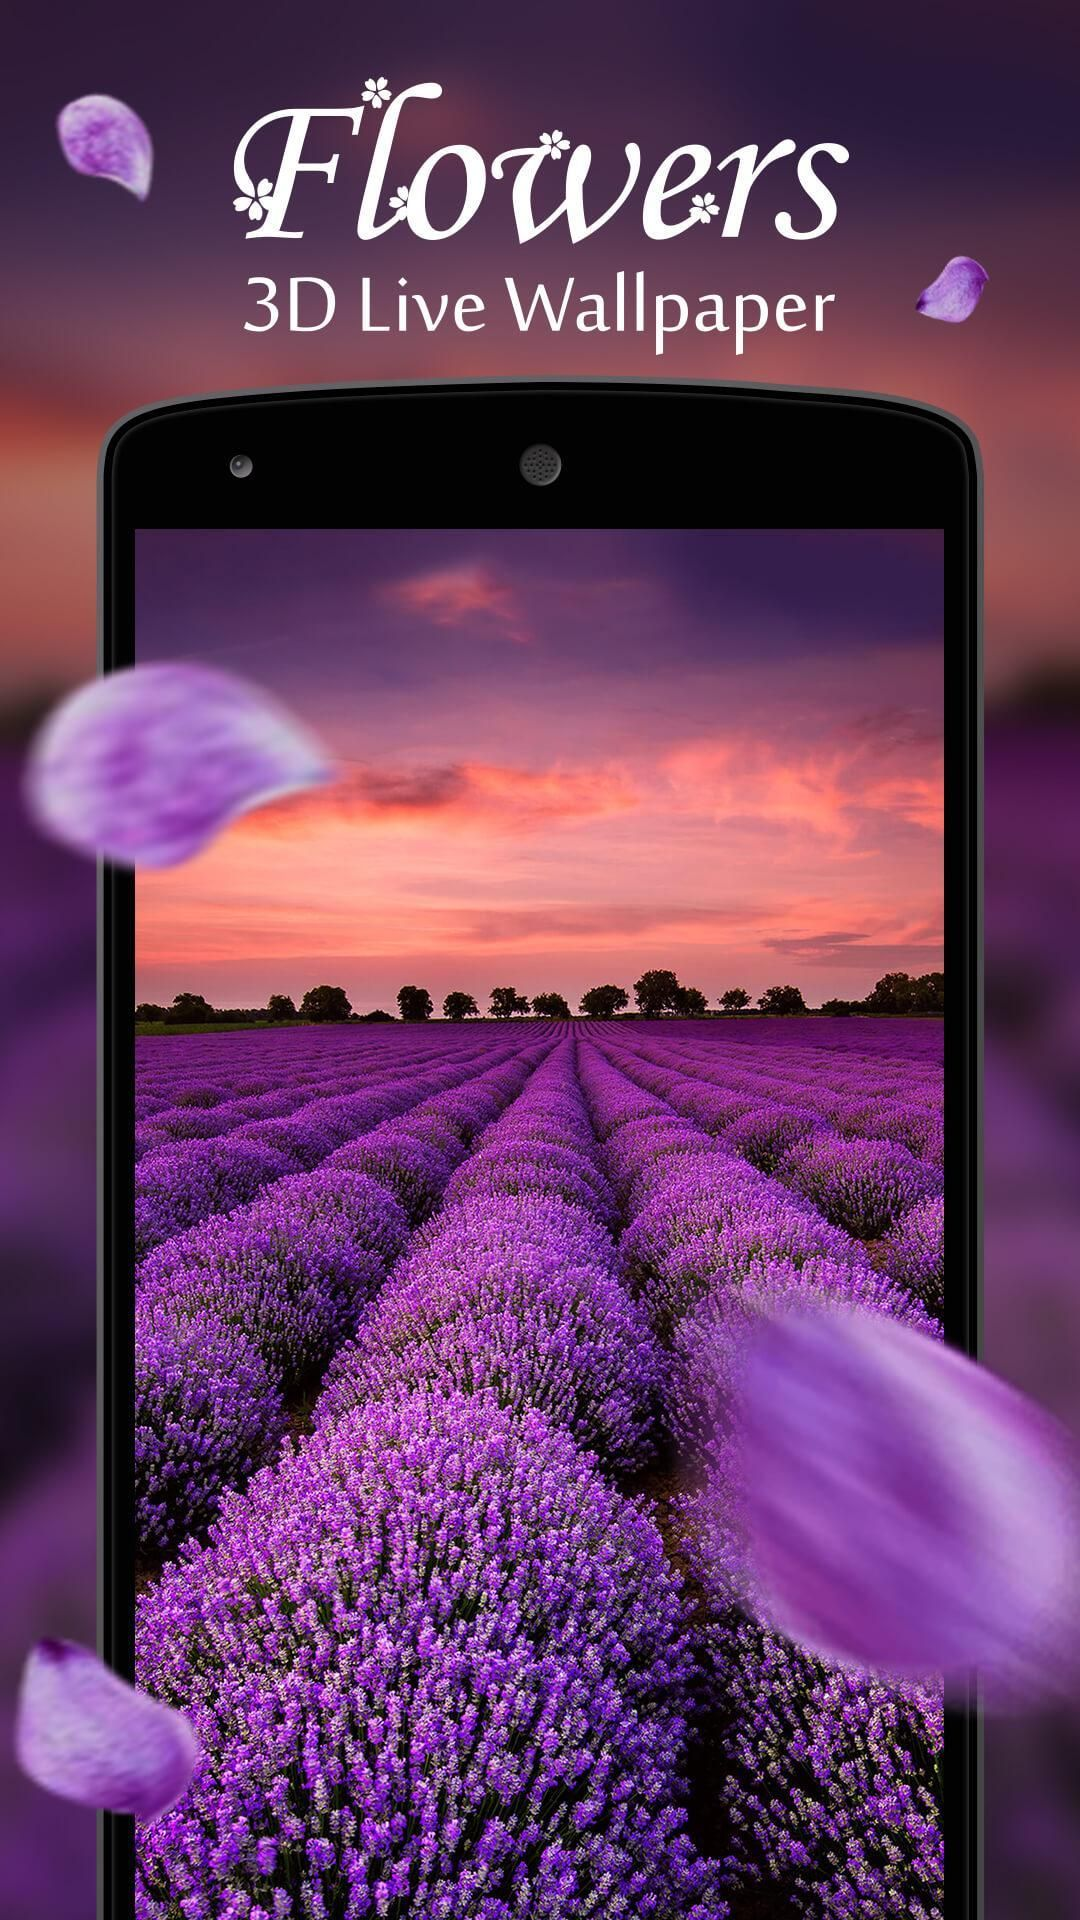 Glowing Flowers Live Wallpaper Hd Is A Fantastic Collection Of High Resolution Images Of Awesome F Purple Flowers Wallpaper Red Roses Wallpaper Live Wallpapers Fantastic live flower wallpaper